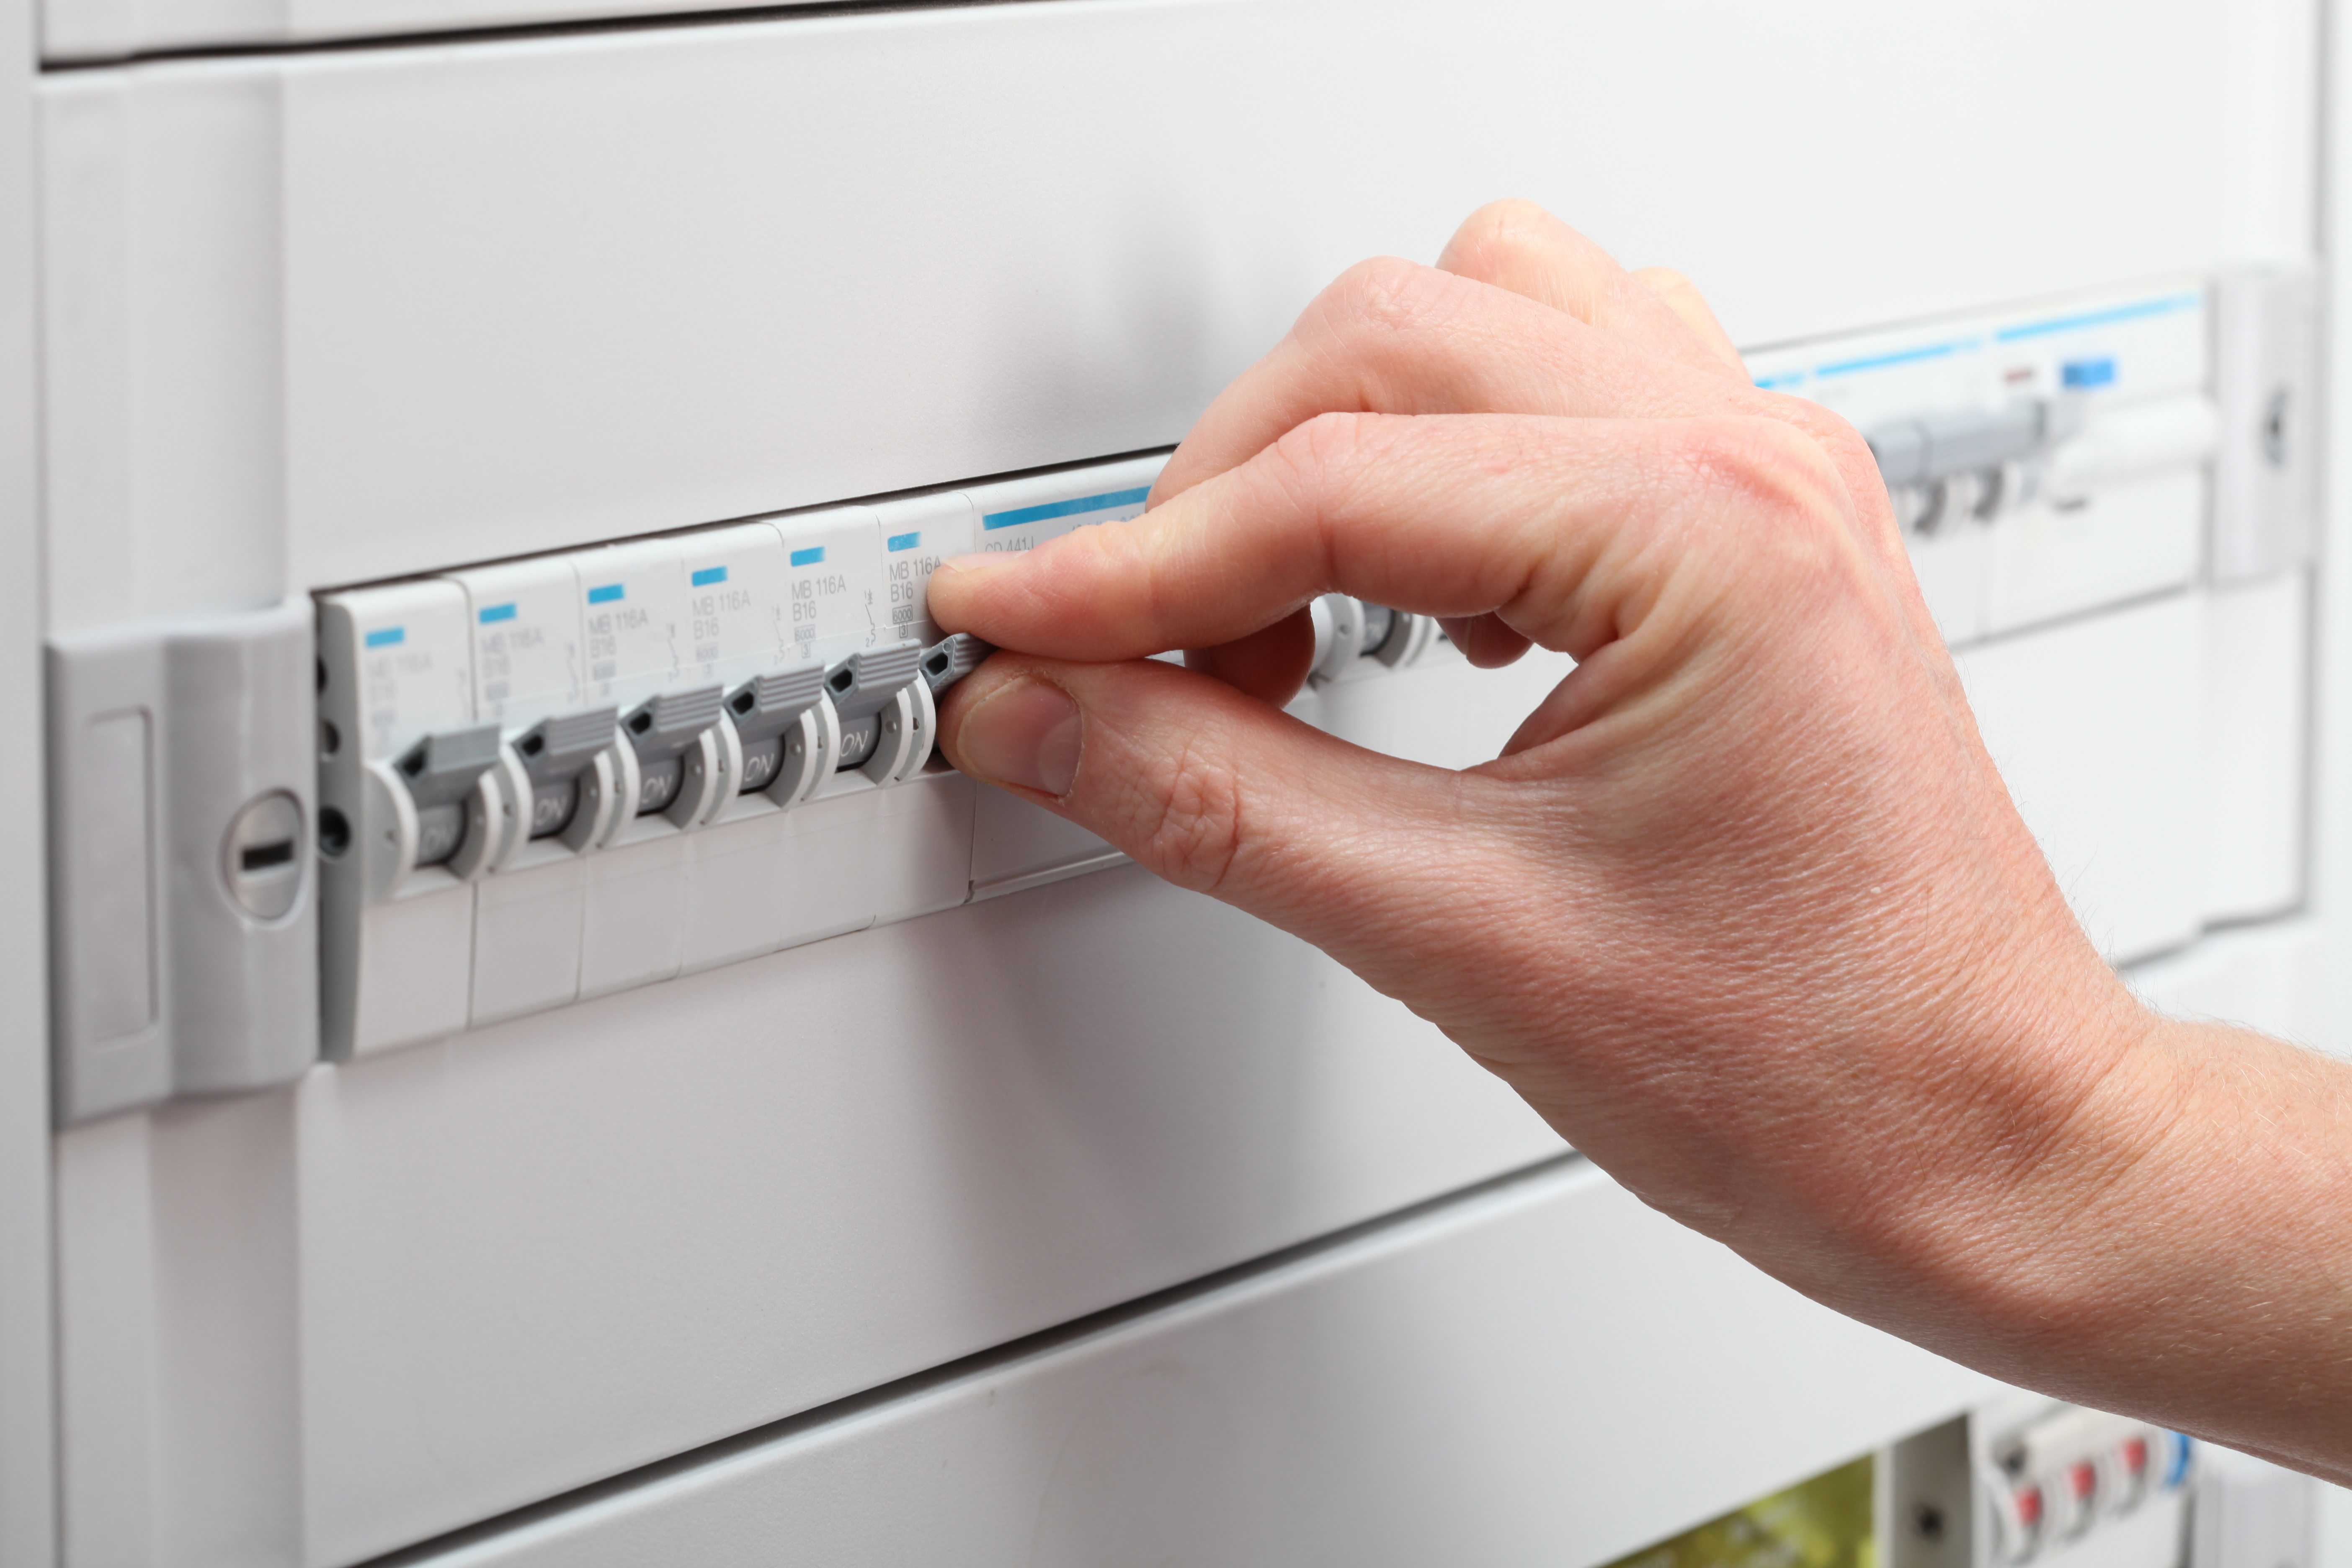 Whats The Big Deal About Circuit Breakers Industrial Strength Ground Fault Interrupt Arc Current Interrupters Afcis And Gfcis Are Special Function That During Faults